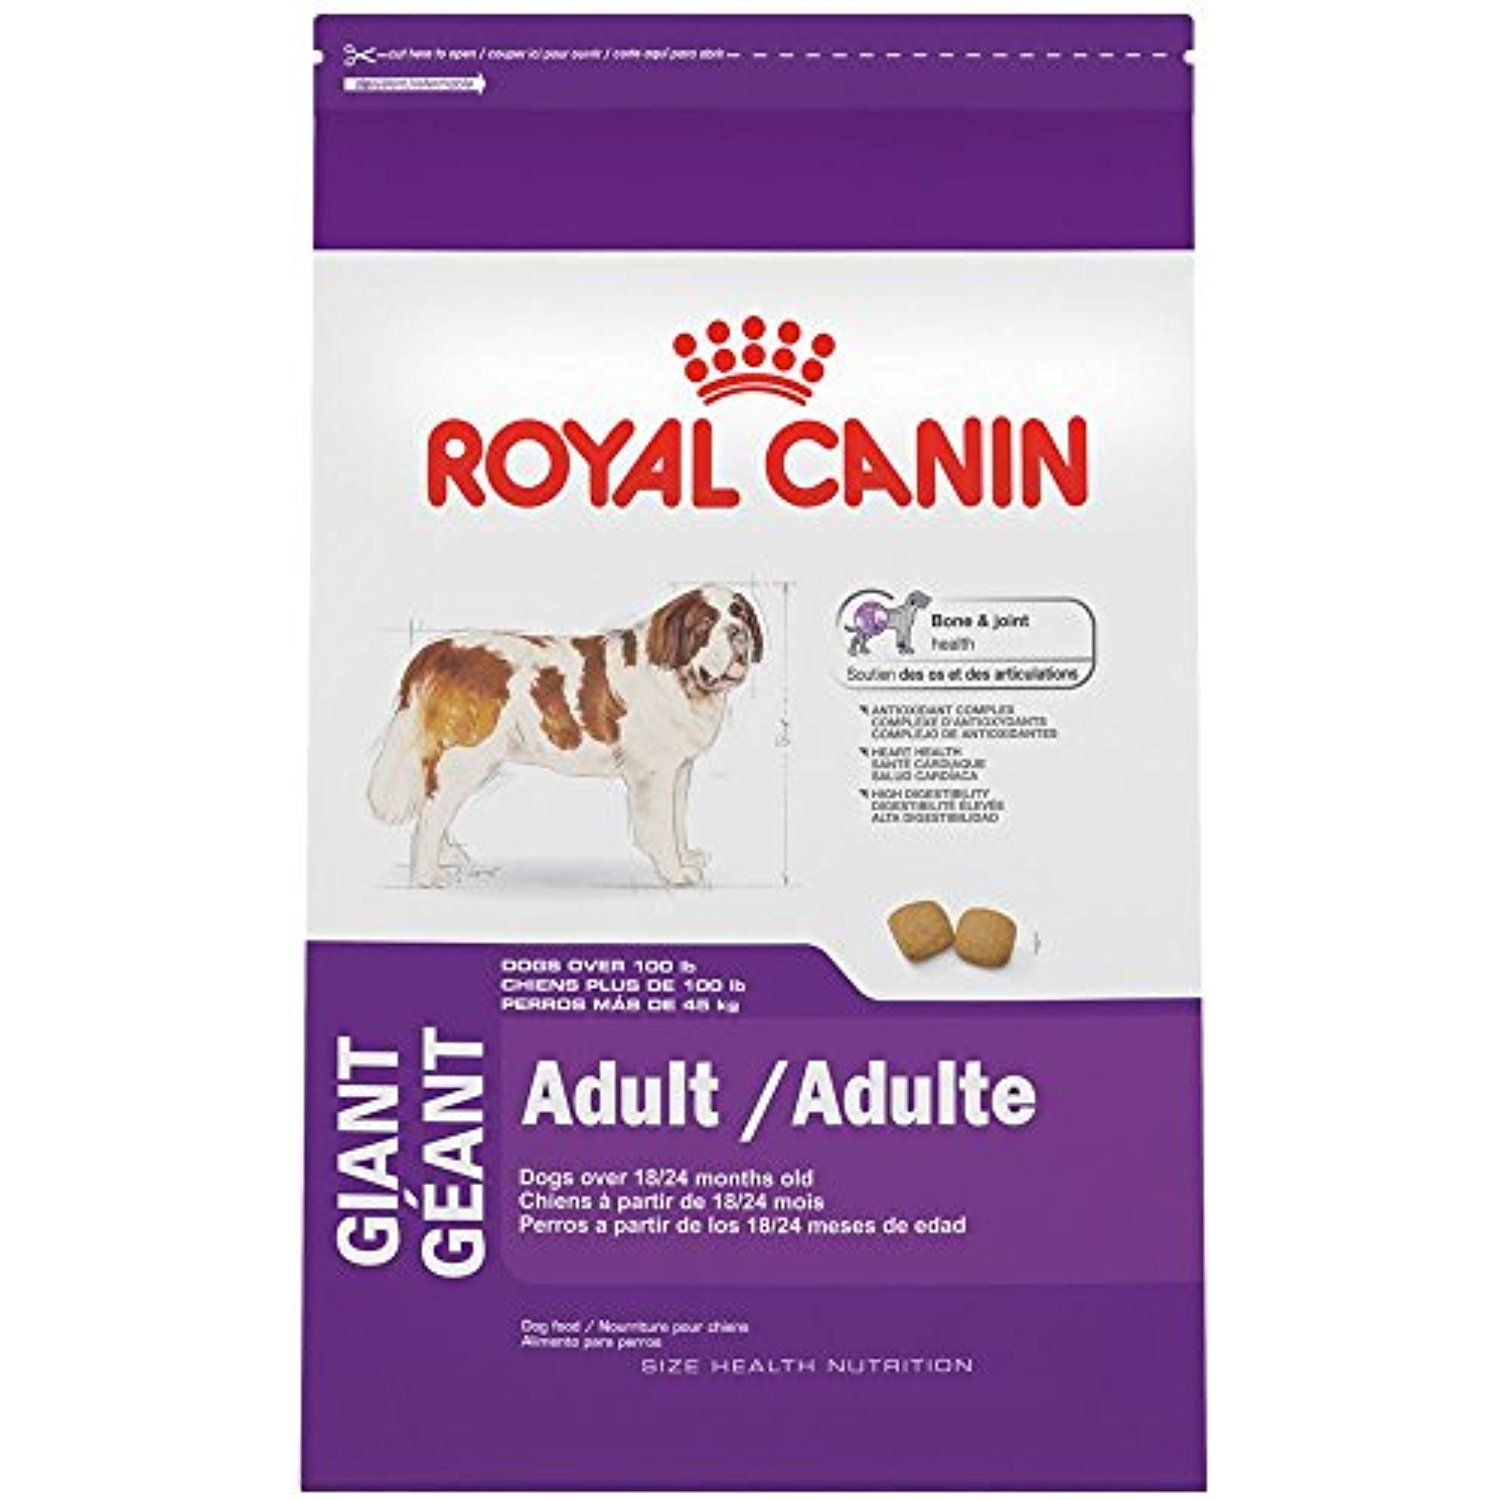 Royal Canin Size Health Nutrition Giant Adult Dry Dog Food 35 Pound You Can Check Out This Great Product This With Images Best Dog Food Dry Dog Food Dog Food Reviews